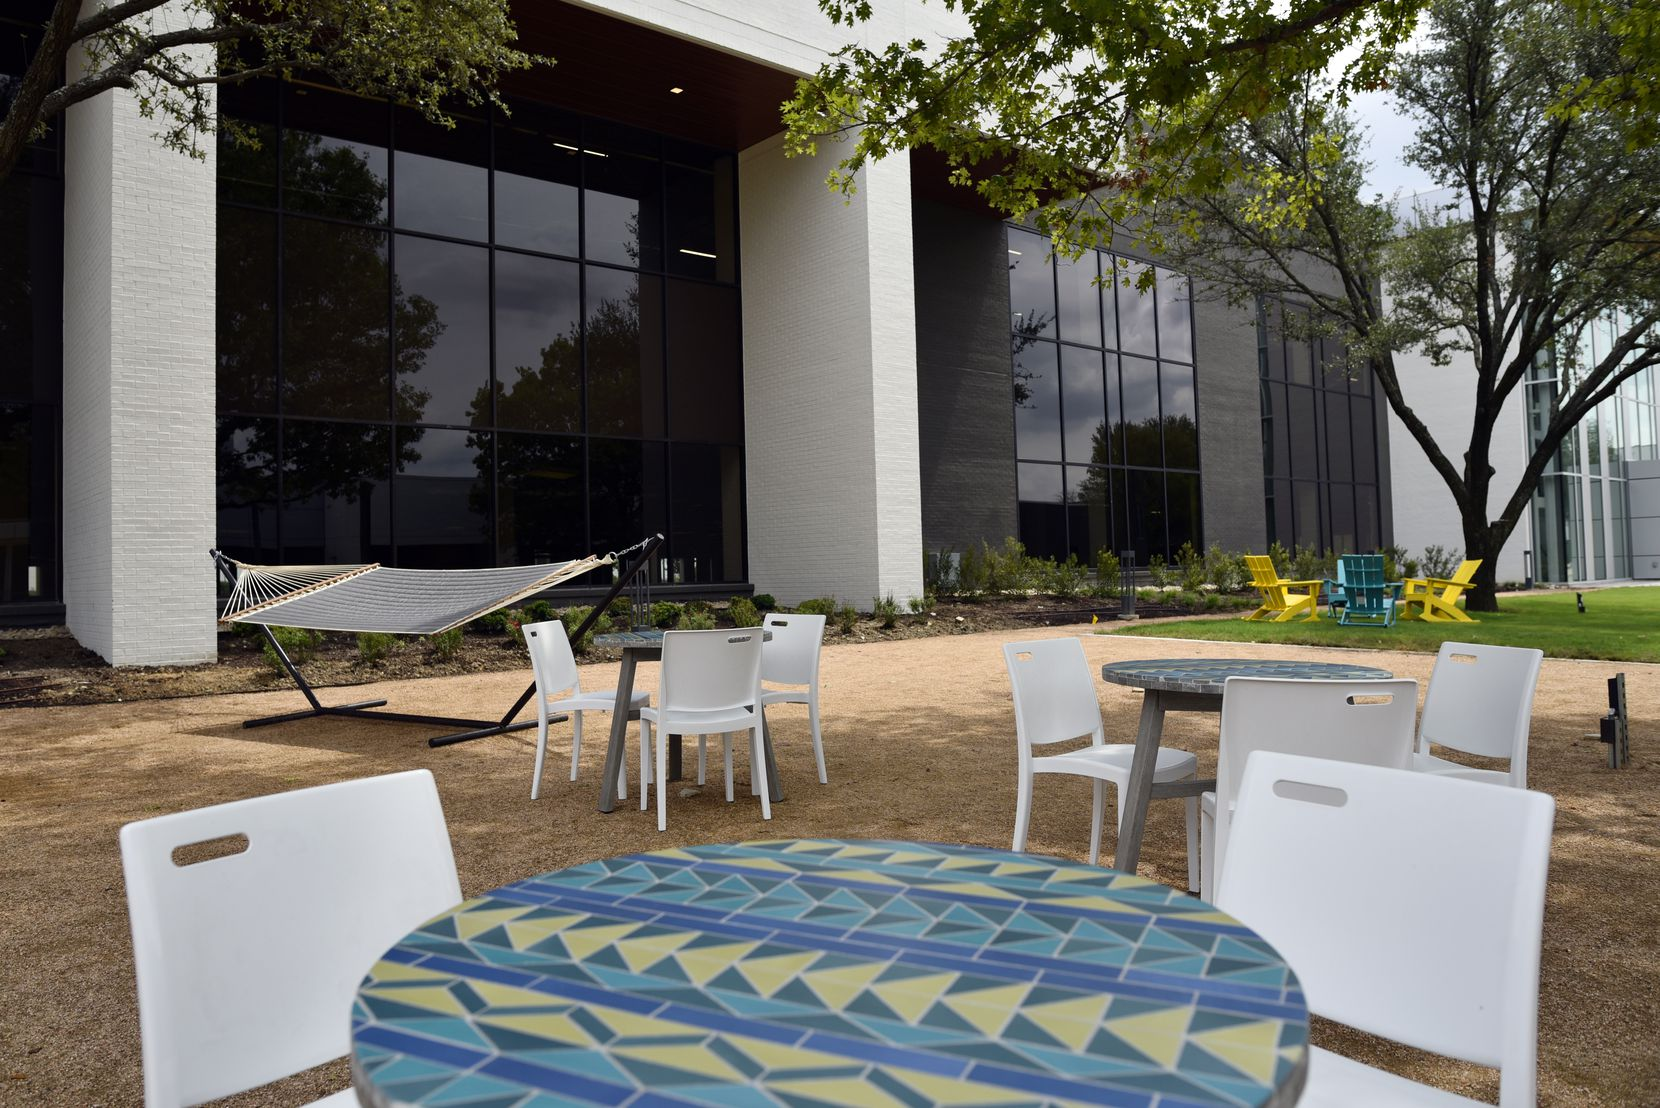 Lawn furniture provides community space on the campus of Legacy Central.